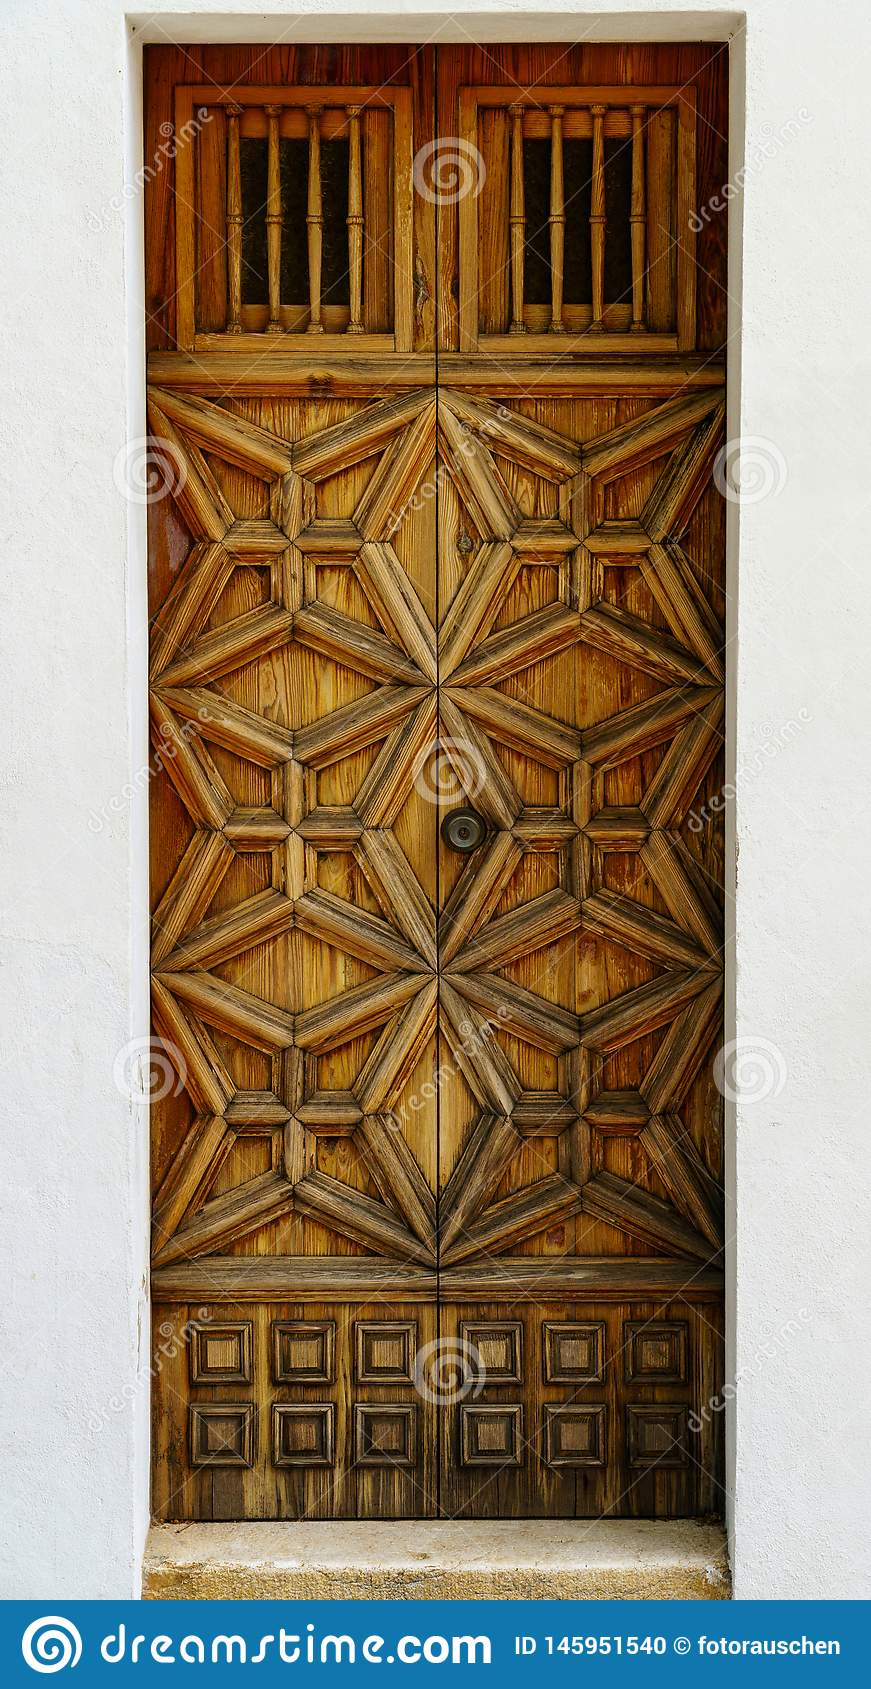 Weathered wooden front door with ornate decor